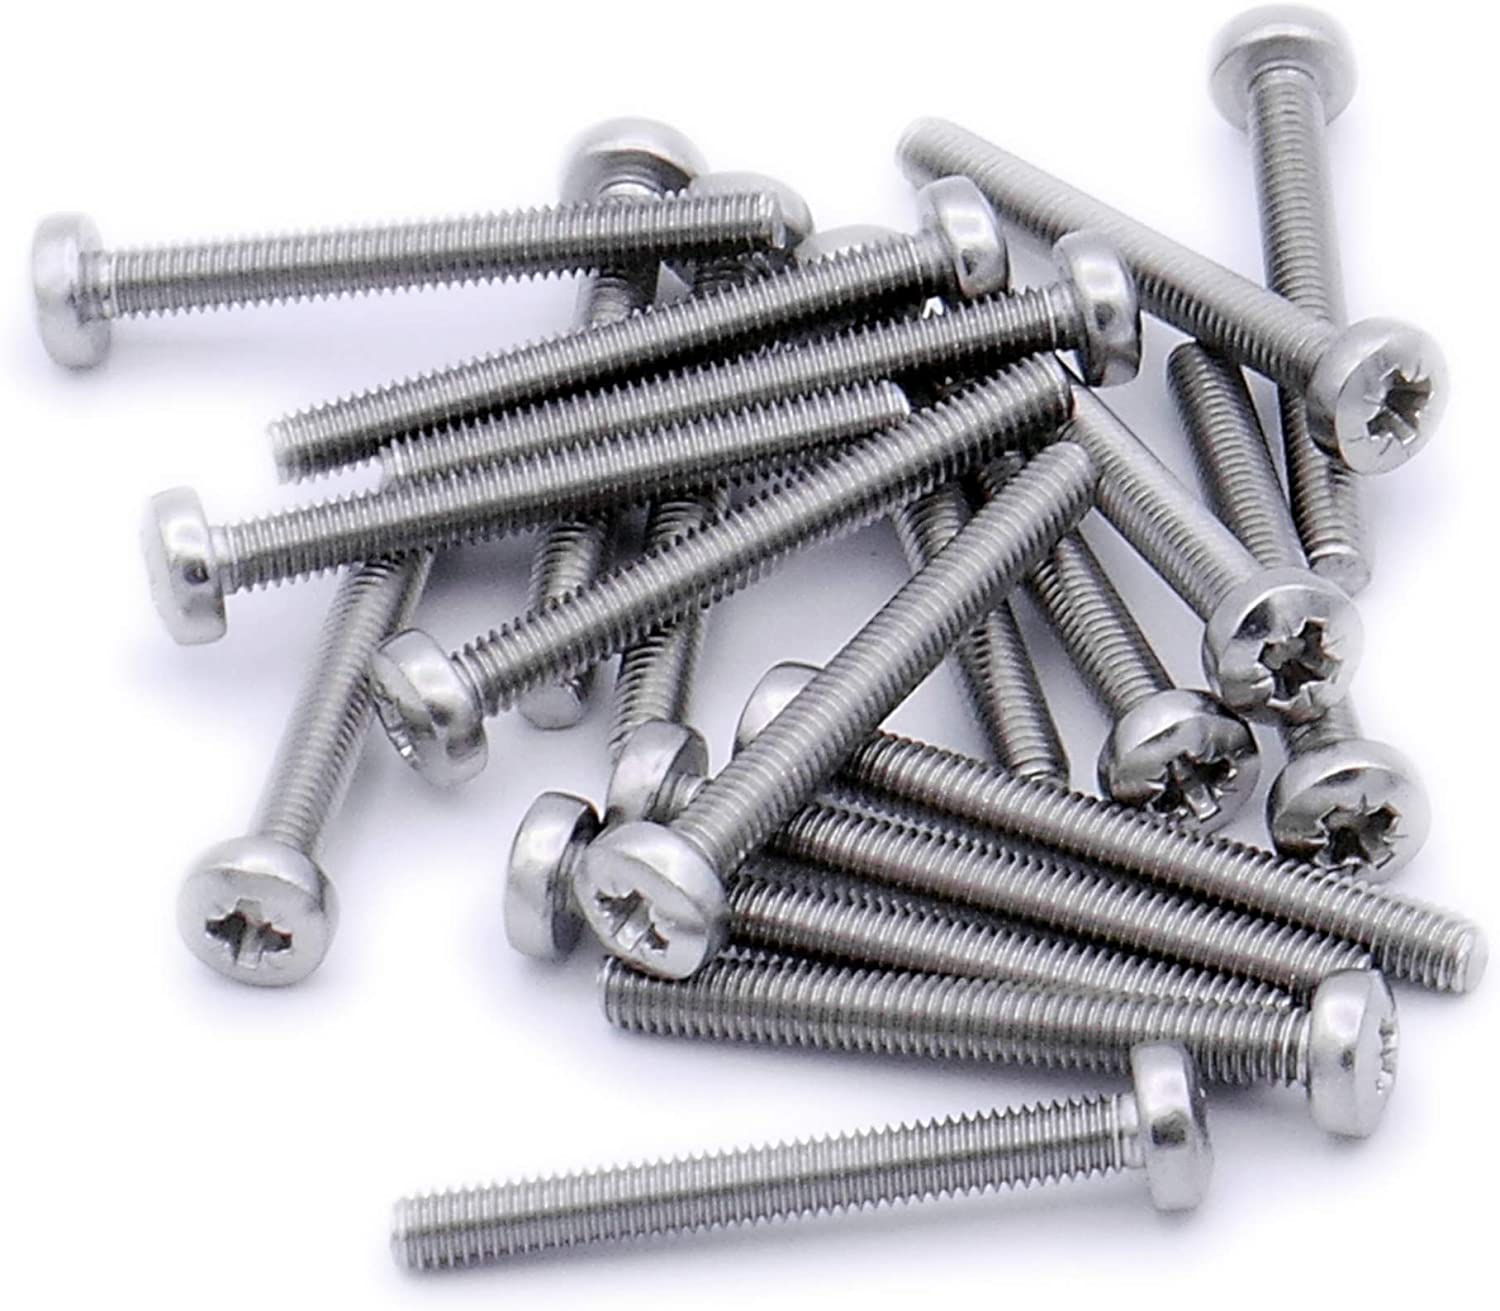 Fastener M4/×20 Flat Head A2-70 Home Use Office Use for Industrial Screw 8mm to 30mm Bolt